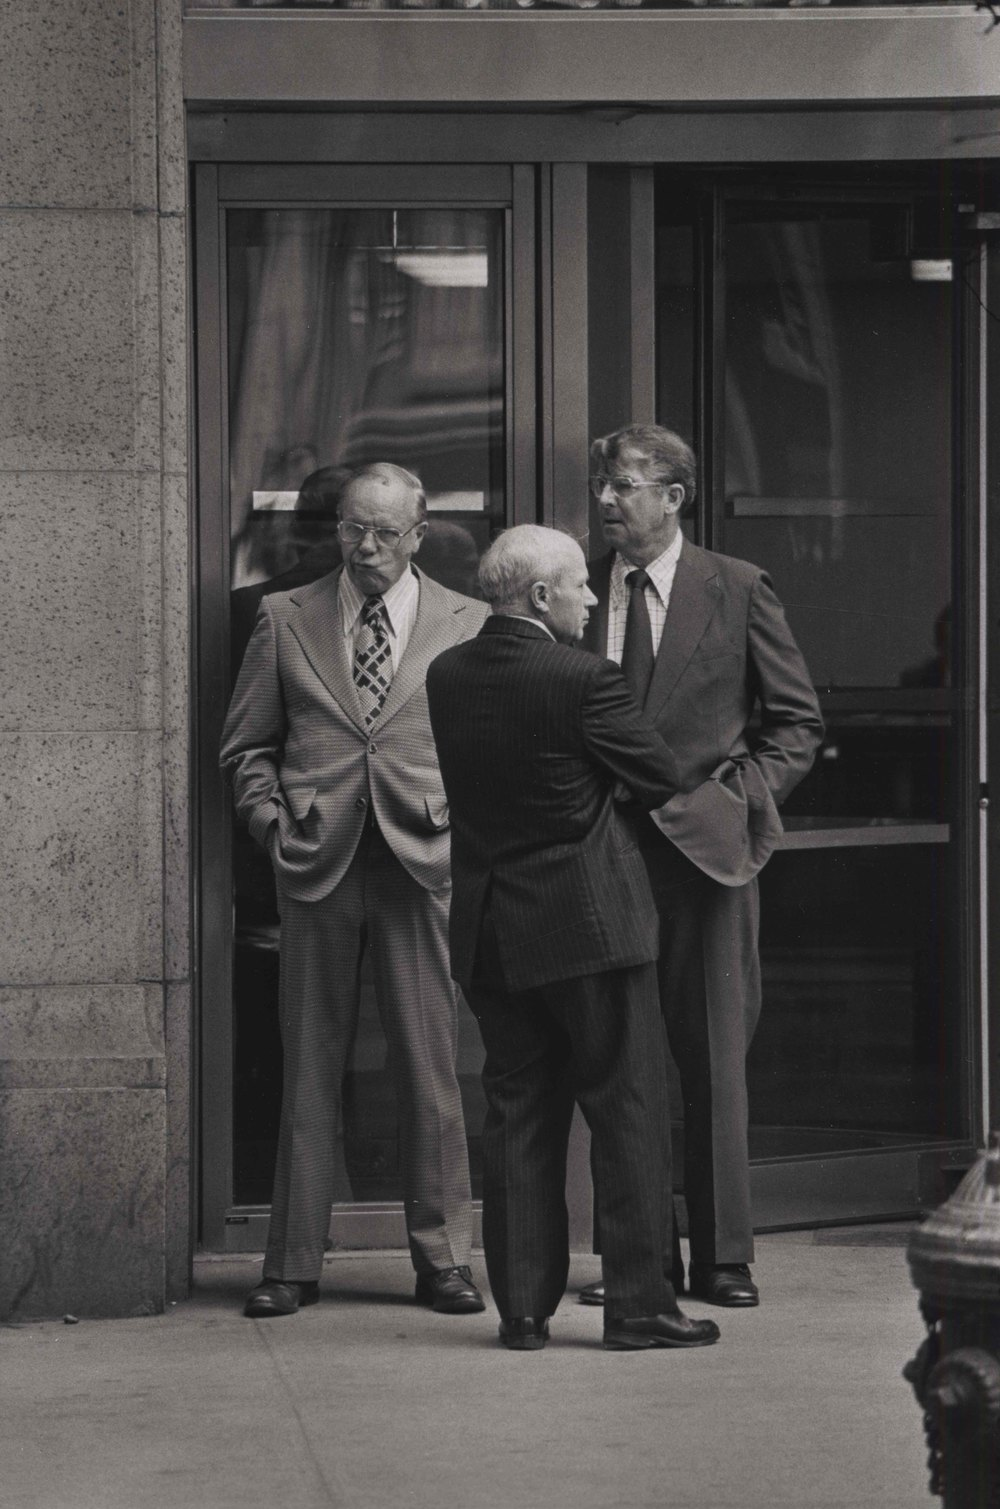 15_85_Three standing men in business suits_Dan Wynn Archive.jpeg